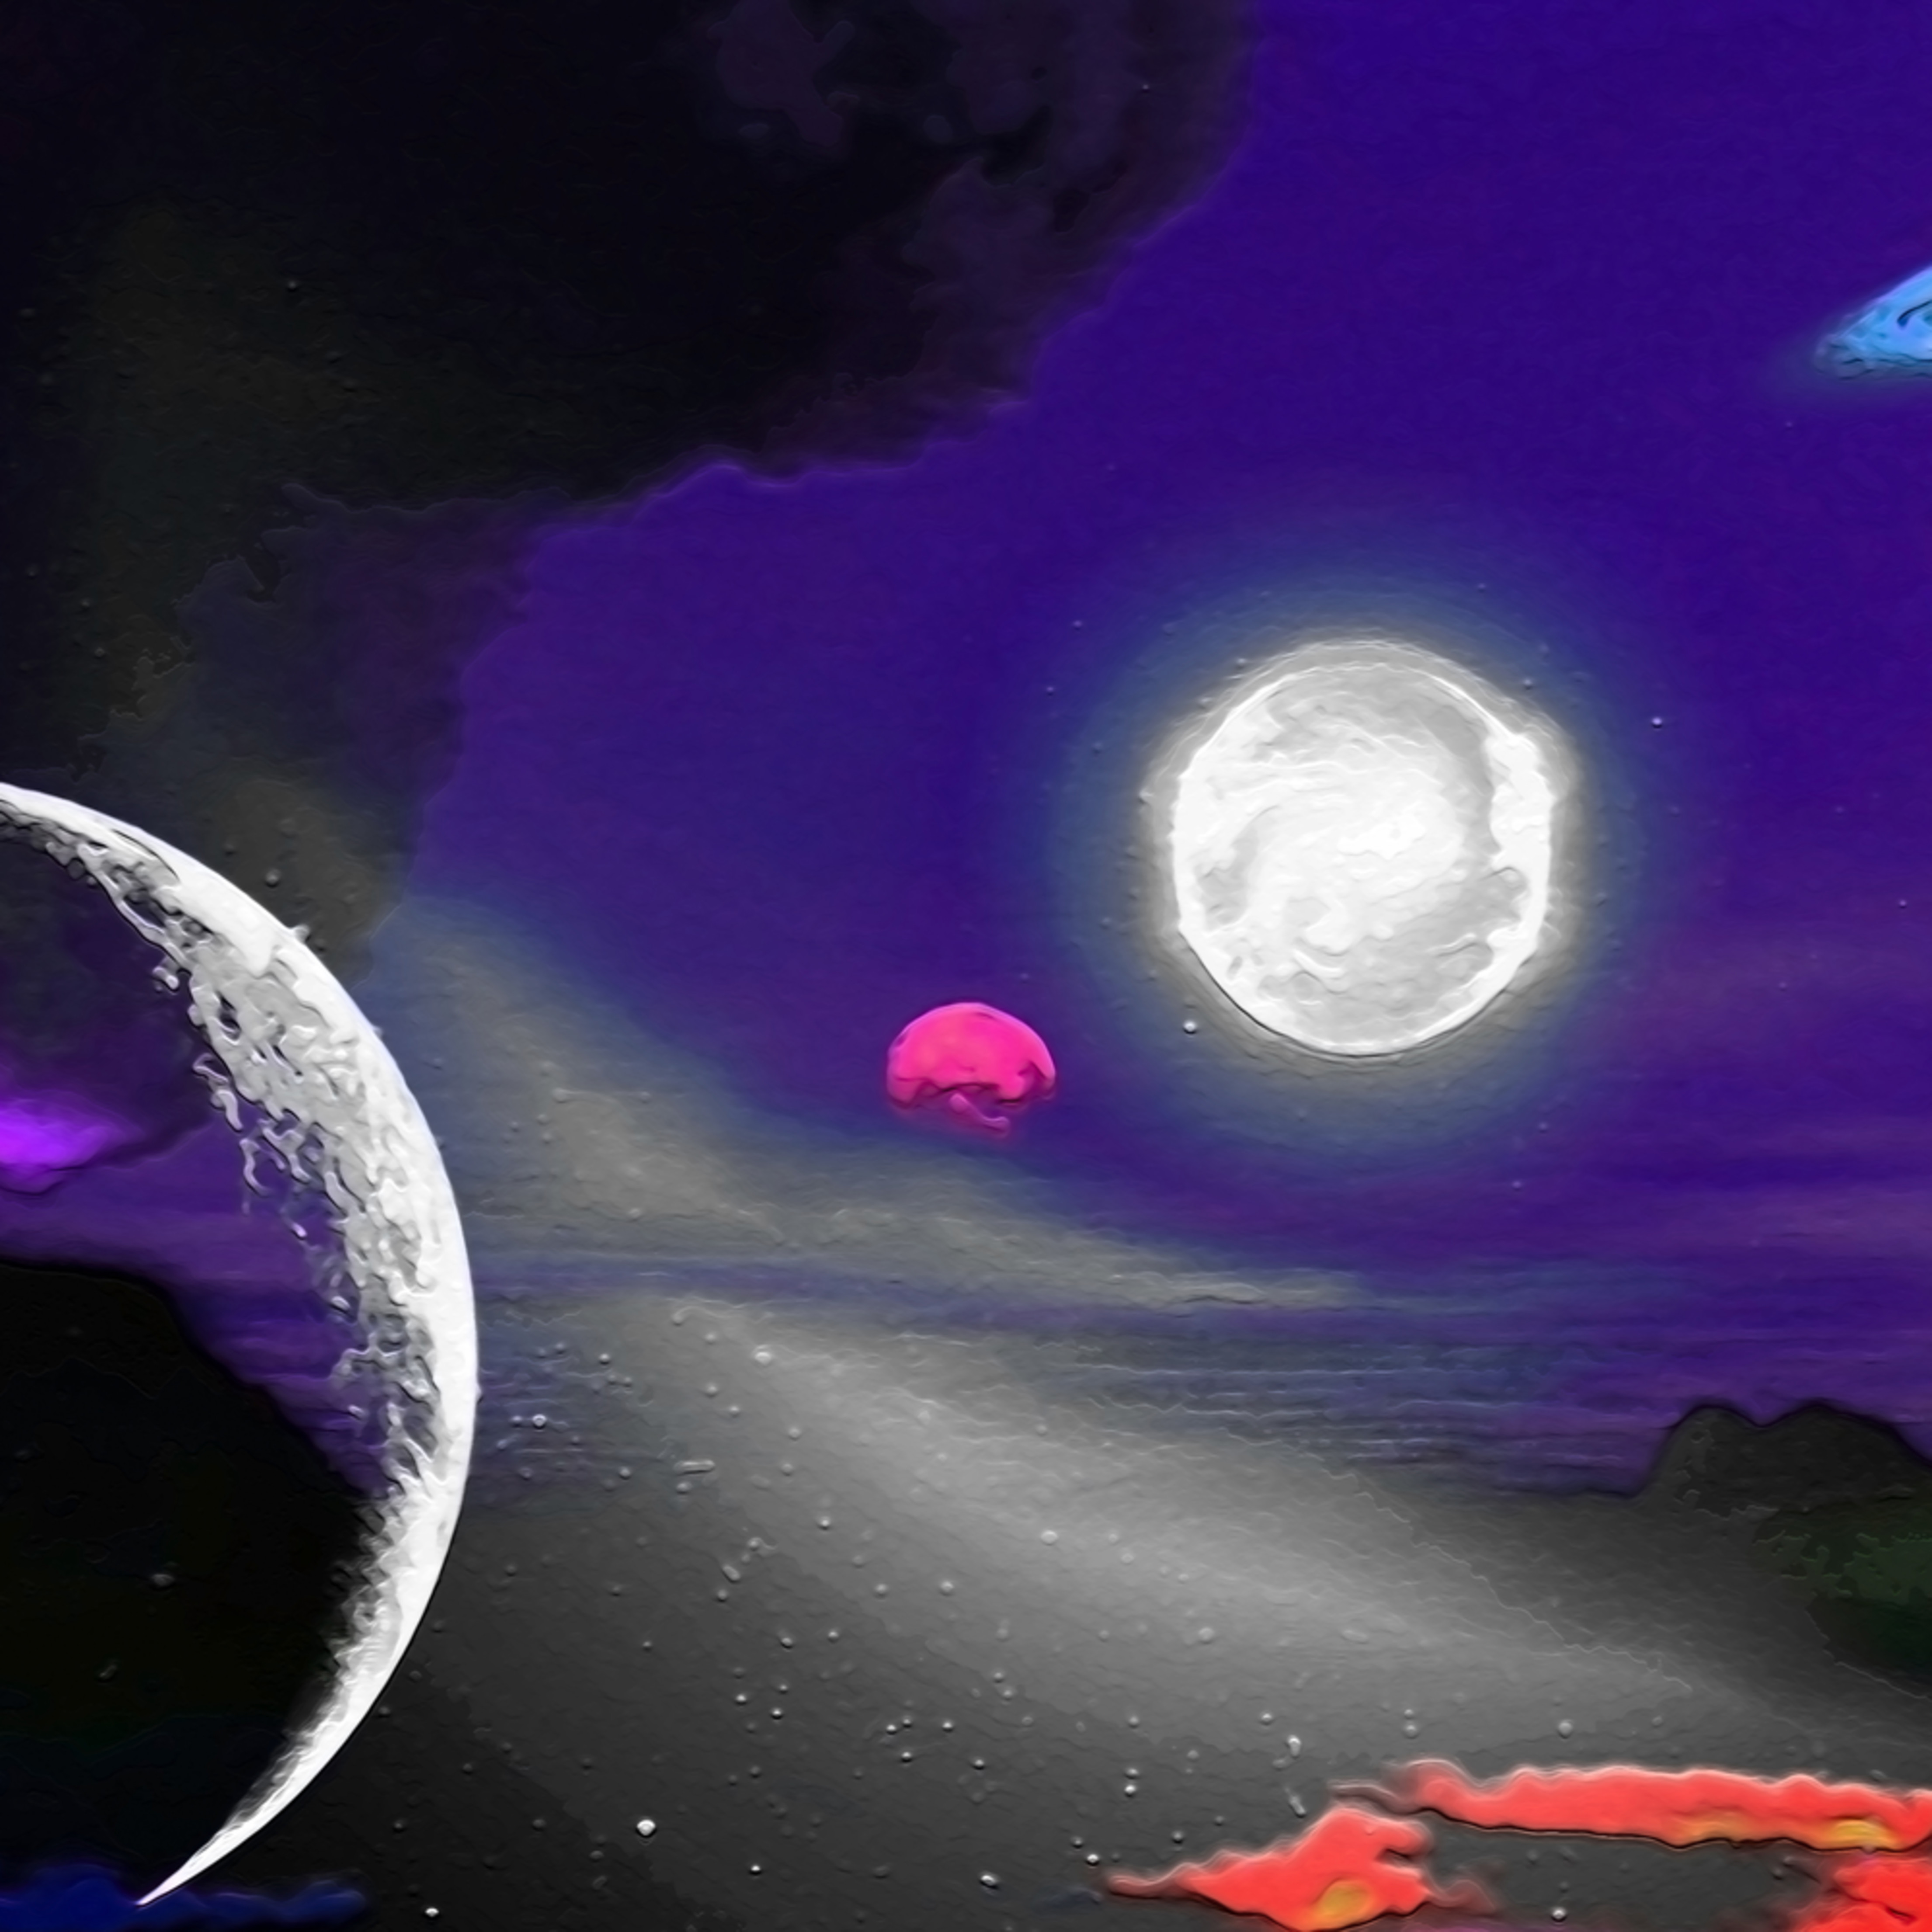 Astral visions exoplanet dreams yiqhli